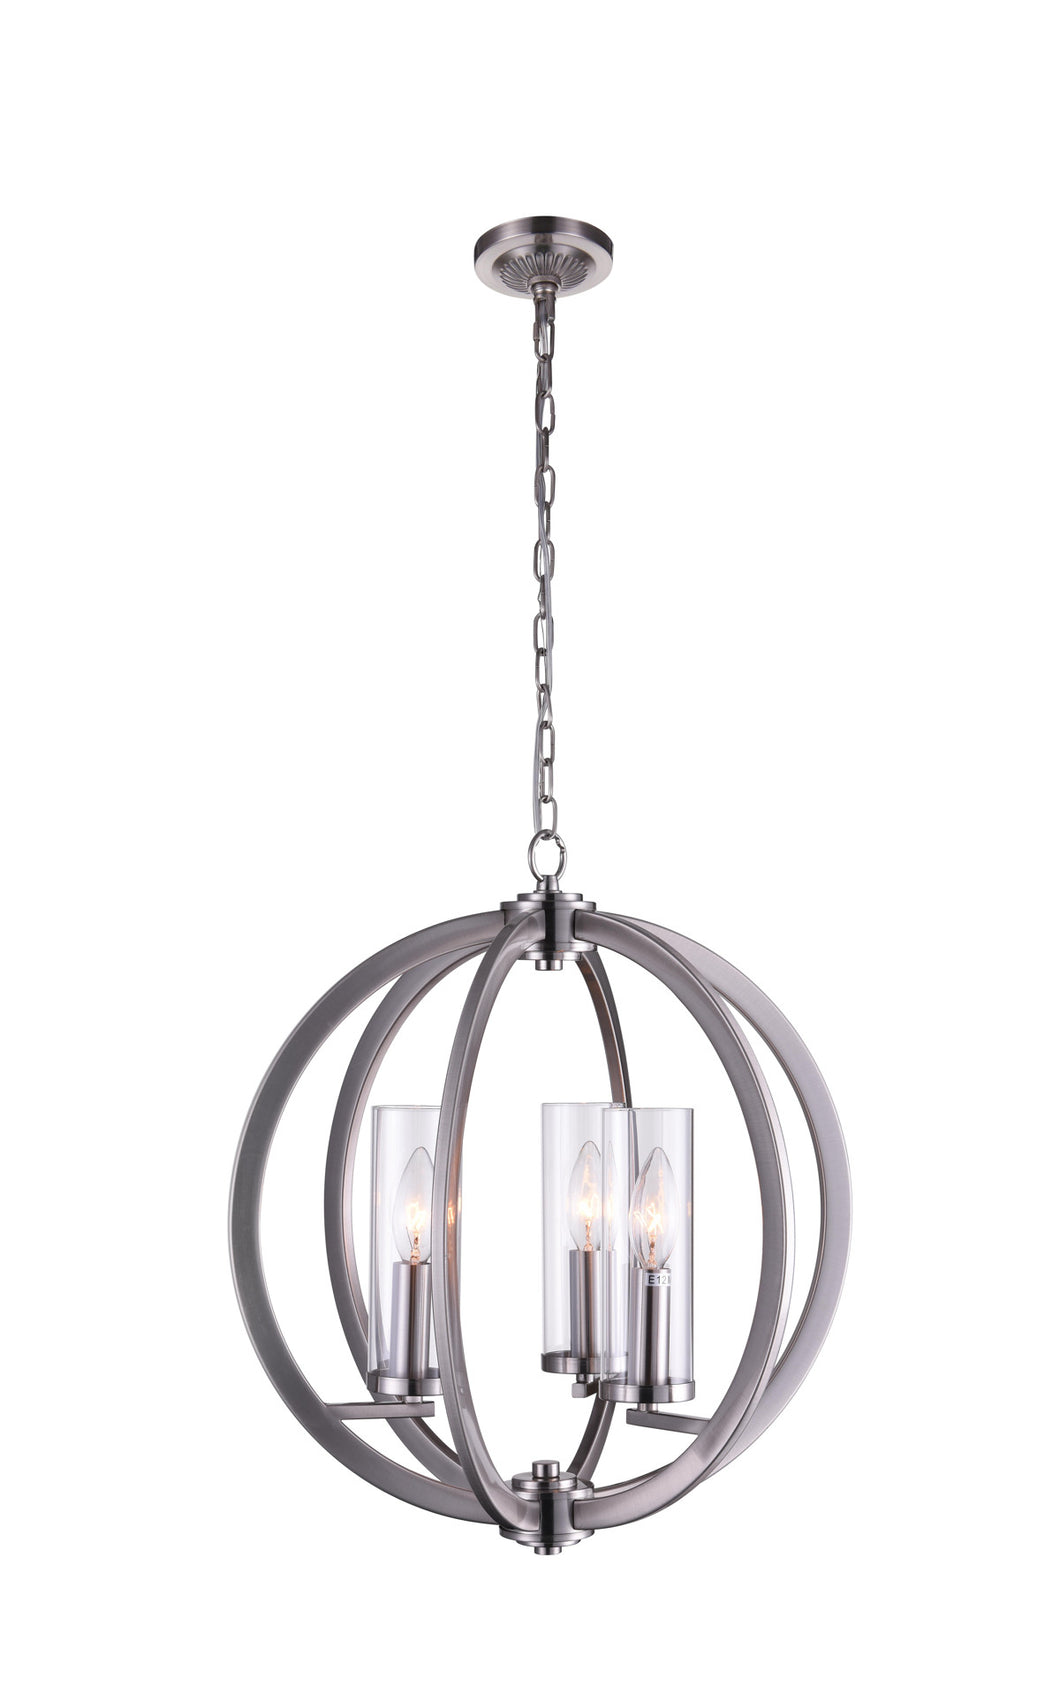 3 Light  Chandelier with Satin Nickel finish